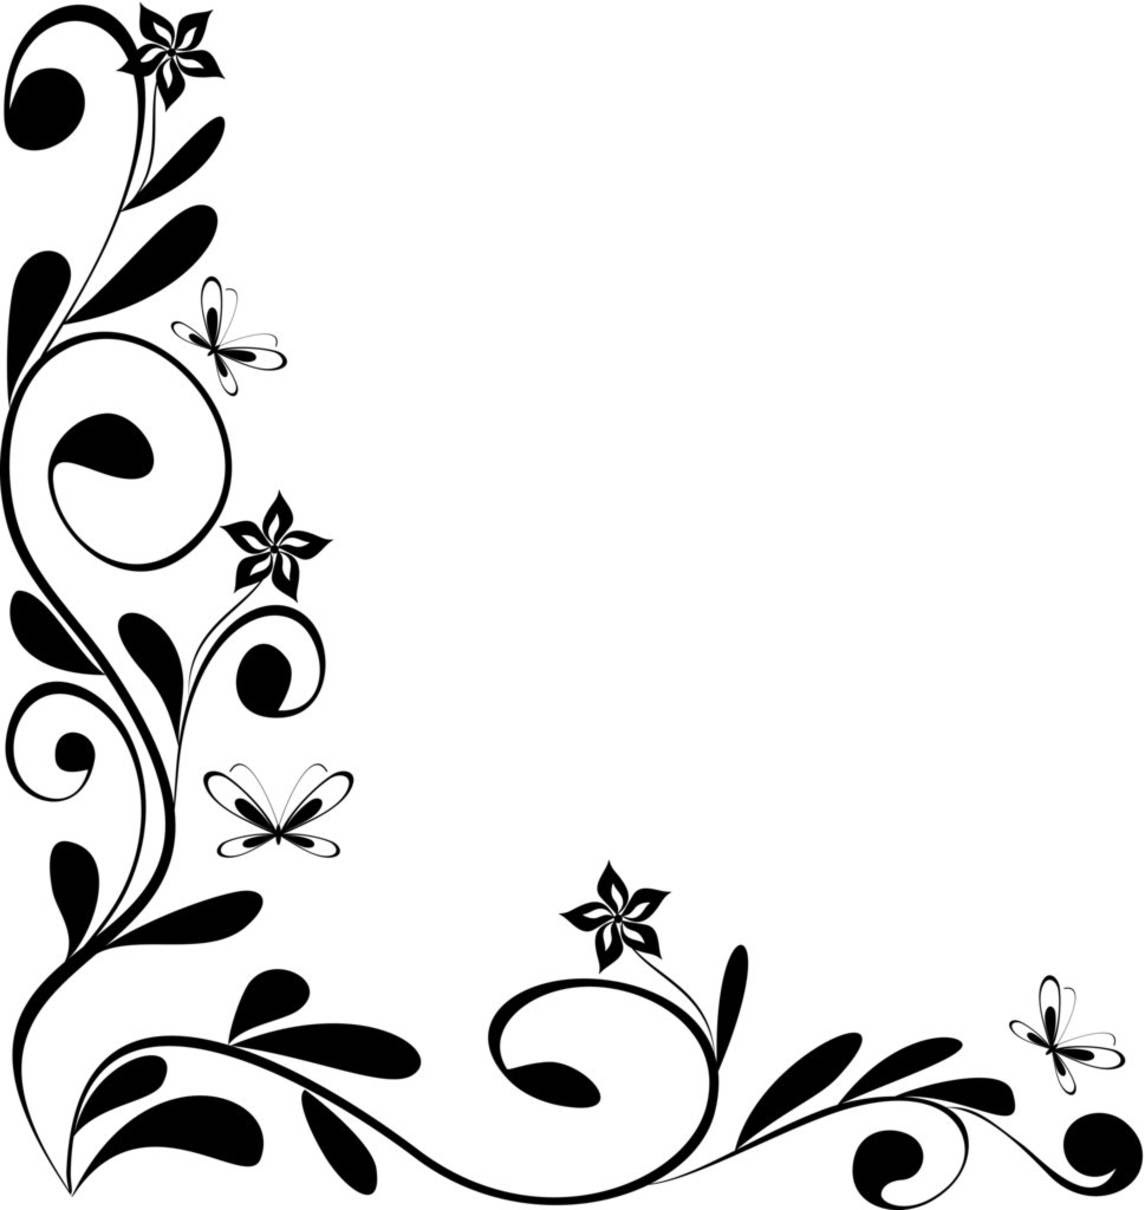 Free Black And White Flower Designs Download Free Clip Art Free